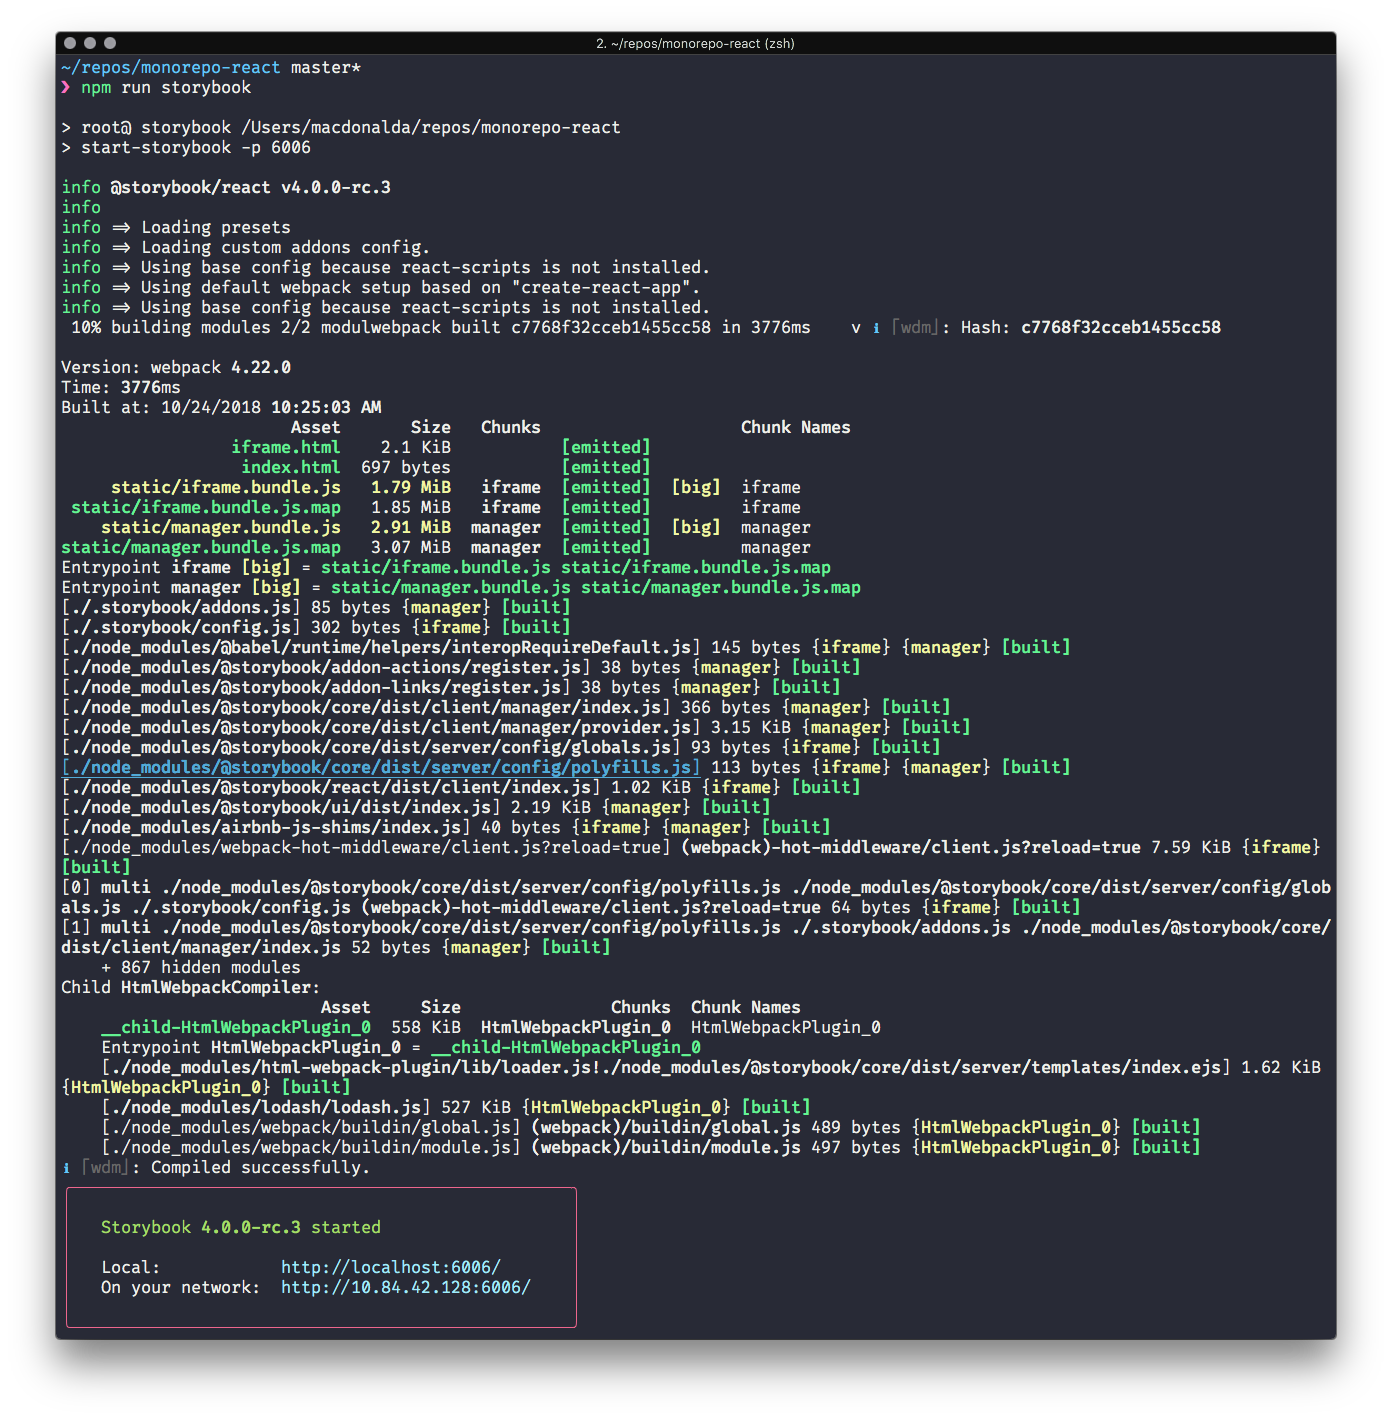 Screenshot of Storybook React 4 launching from the command line